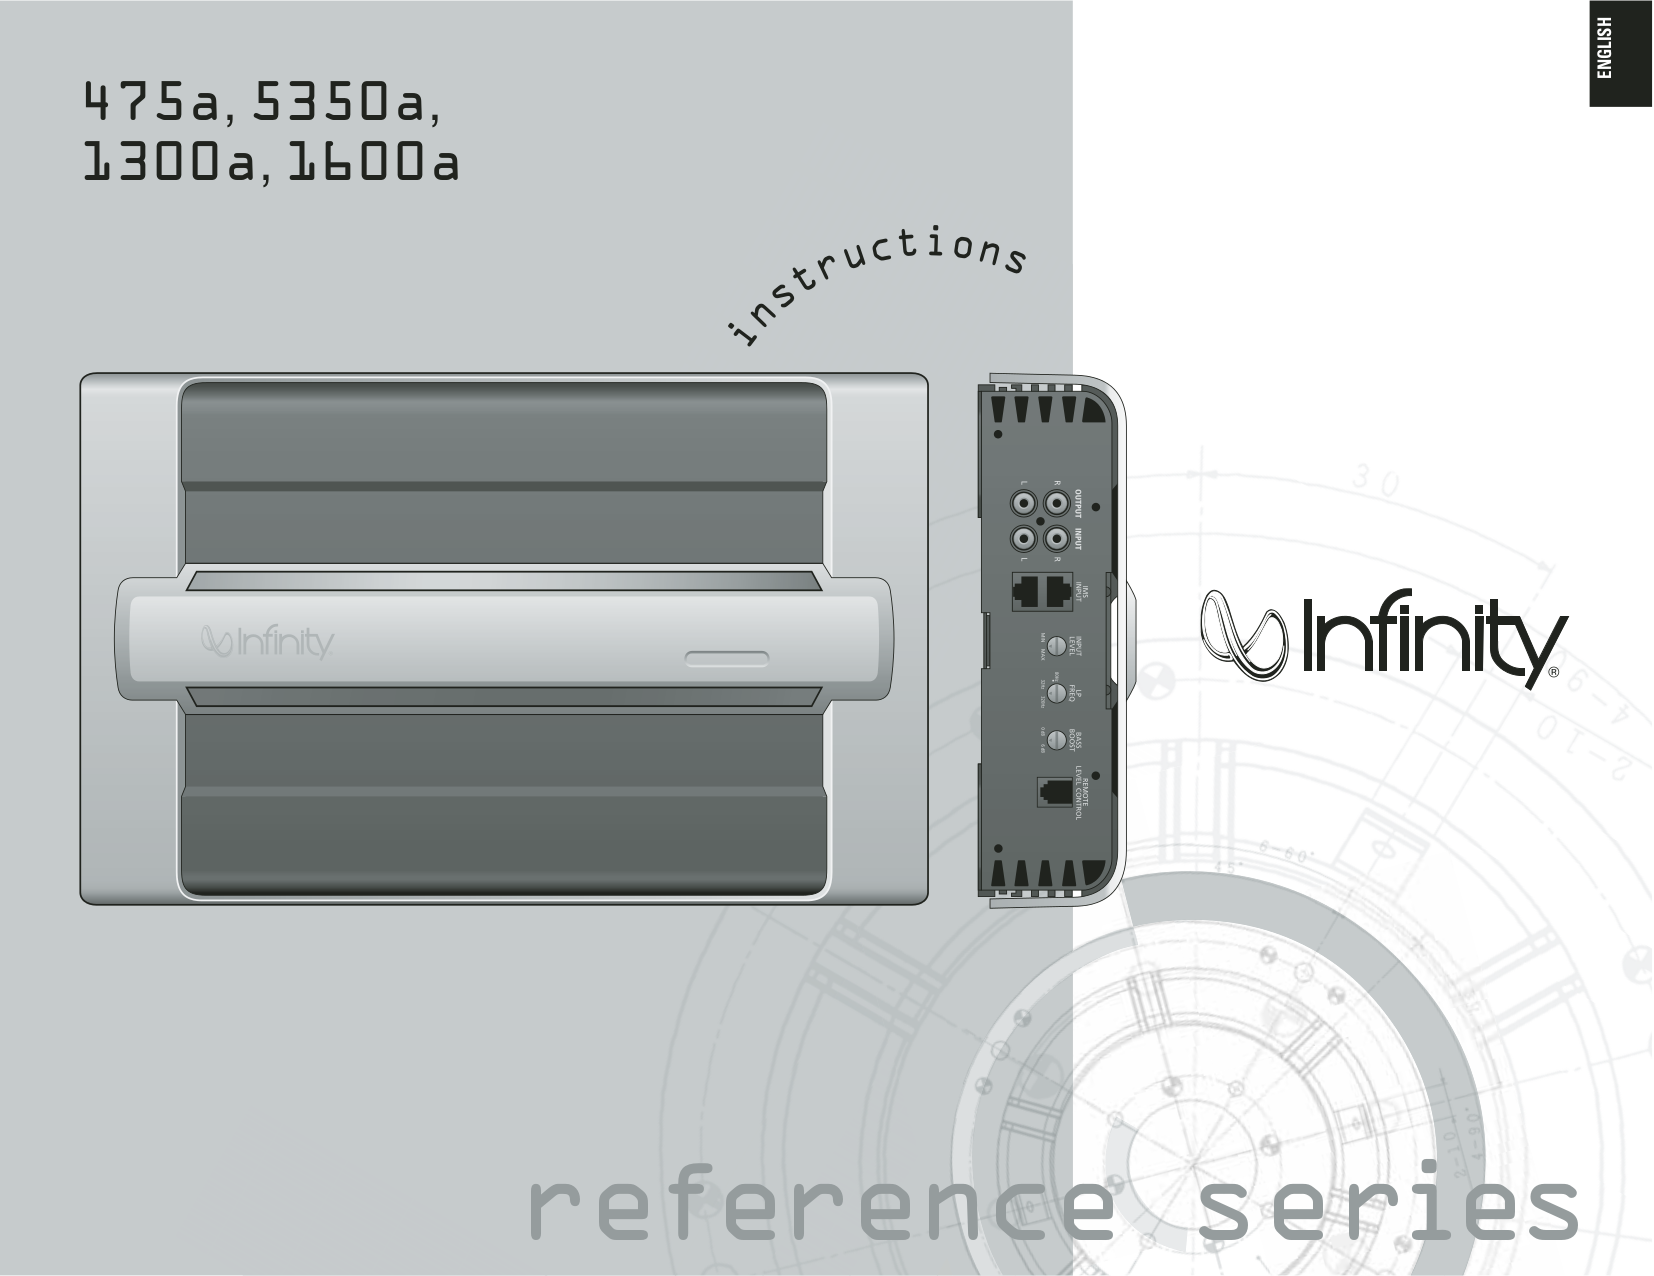 pdf for Infinity Car Amplifier Reference 5350A manual